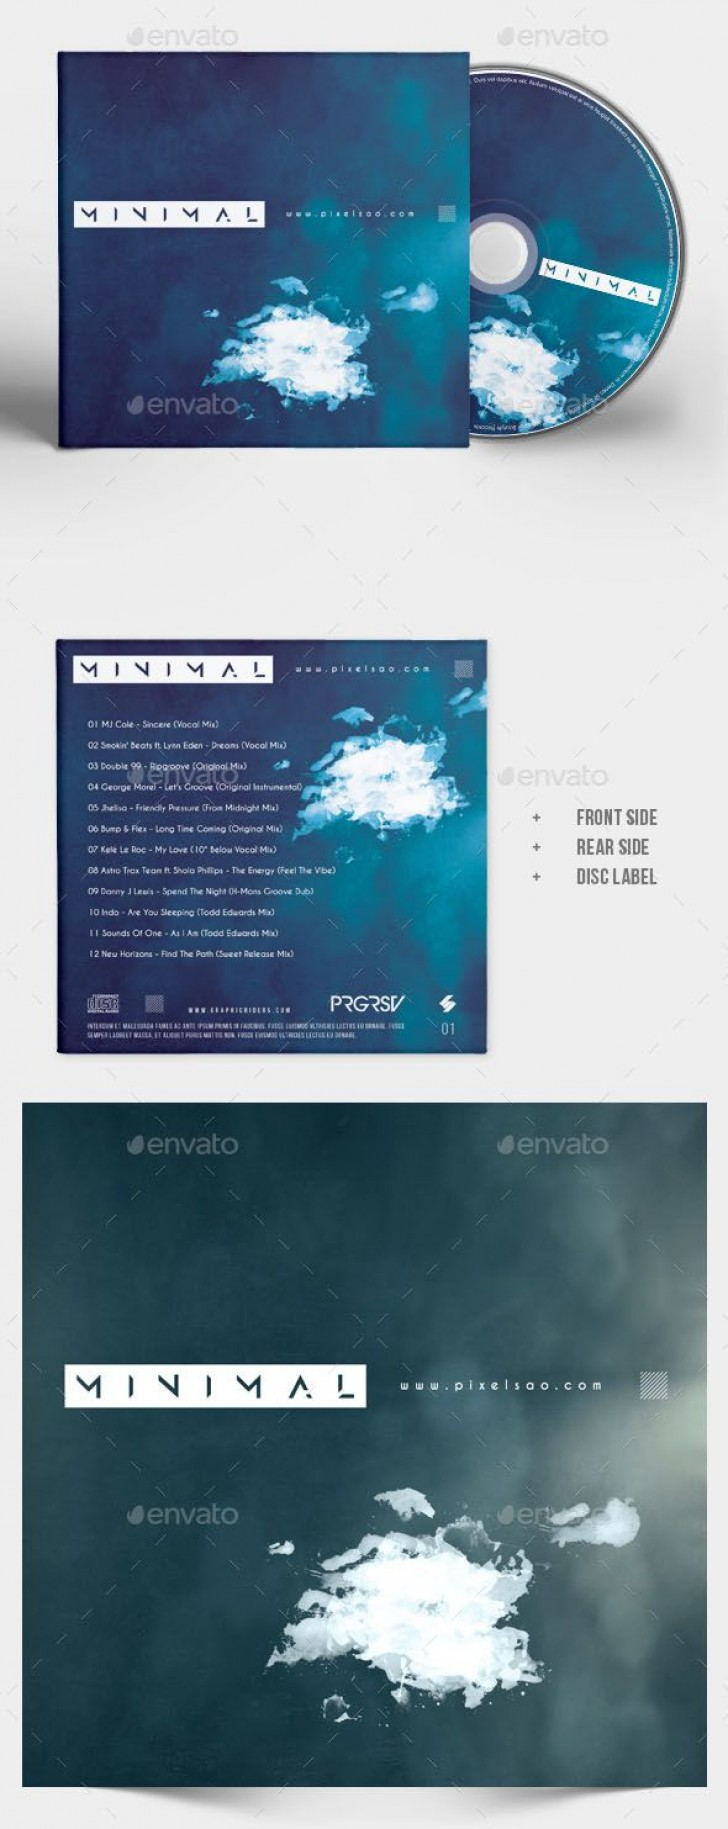 001 Surprising Free Cd Cover Design Template Photoshop High Def  Label Psd Download728